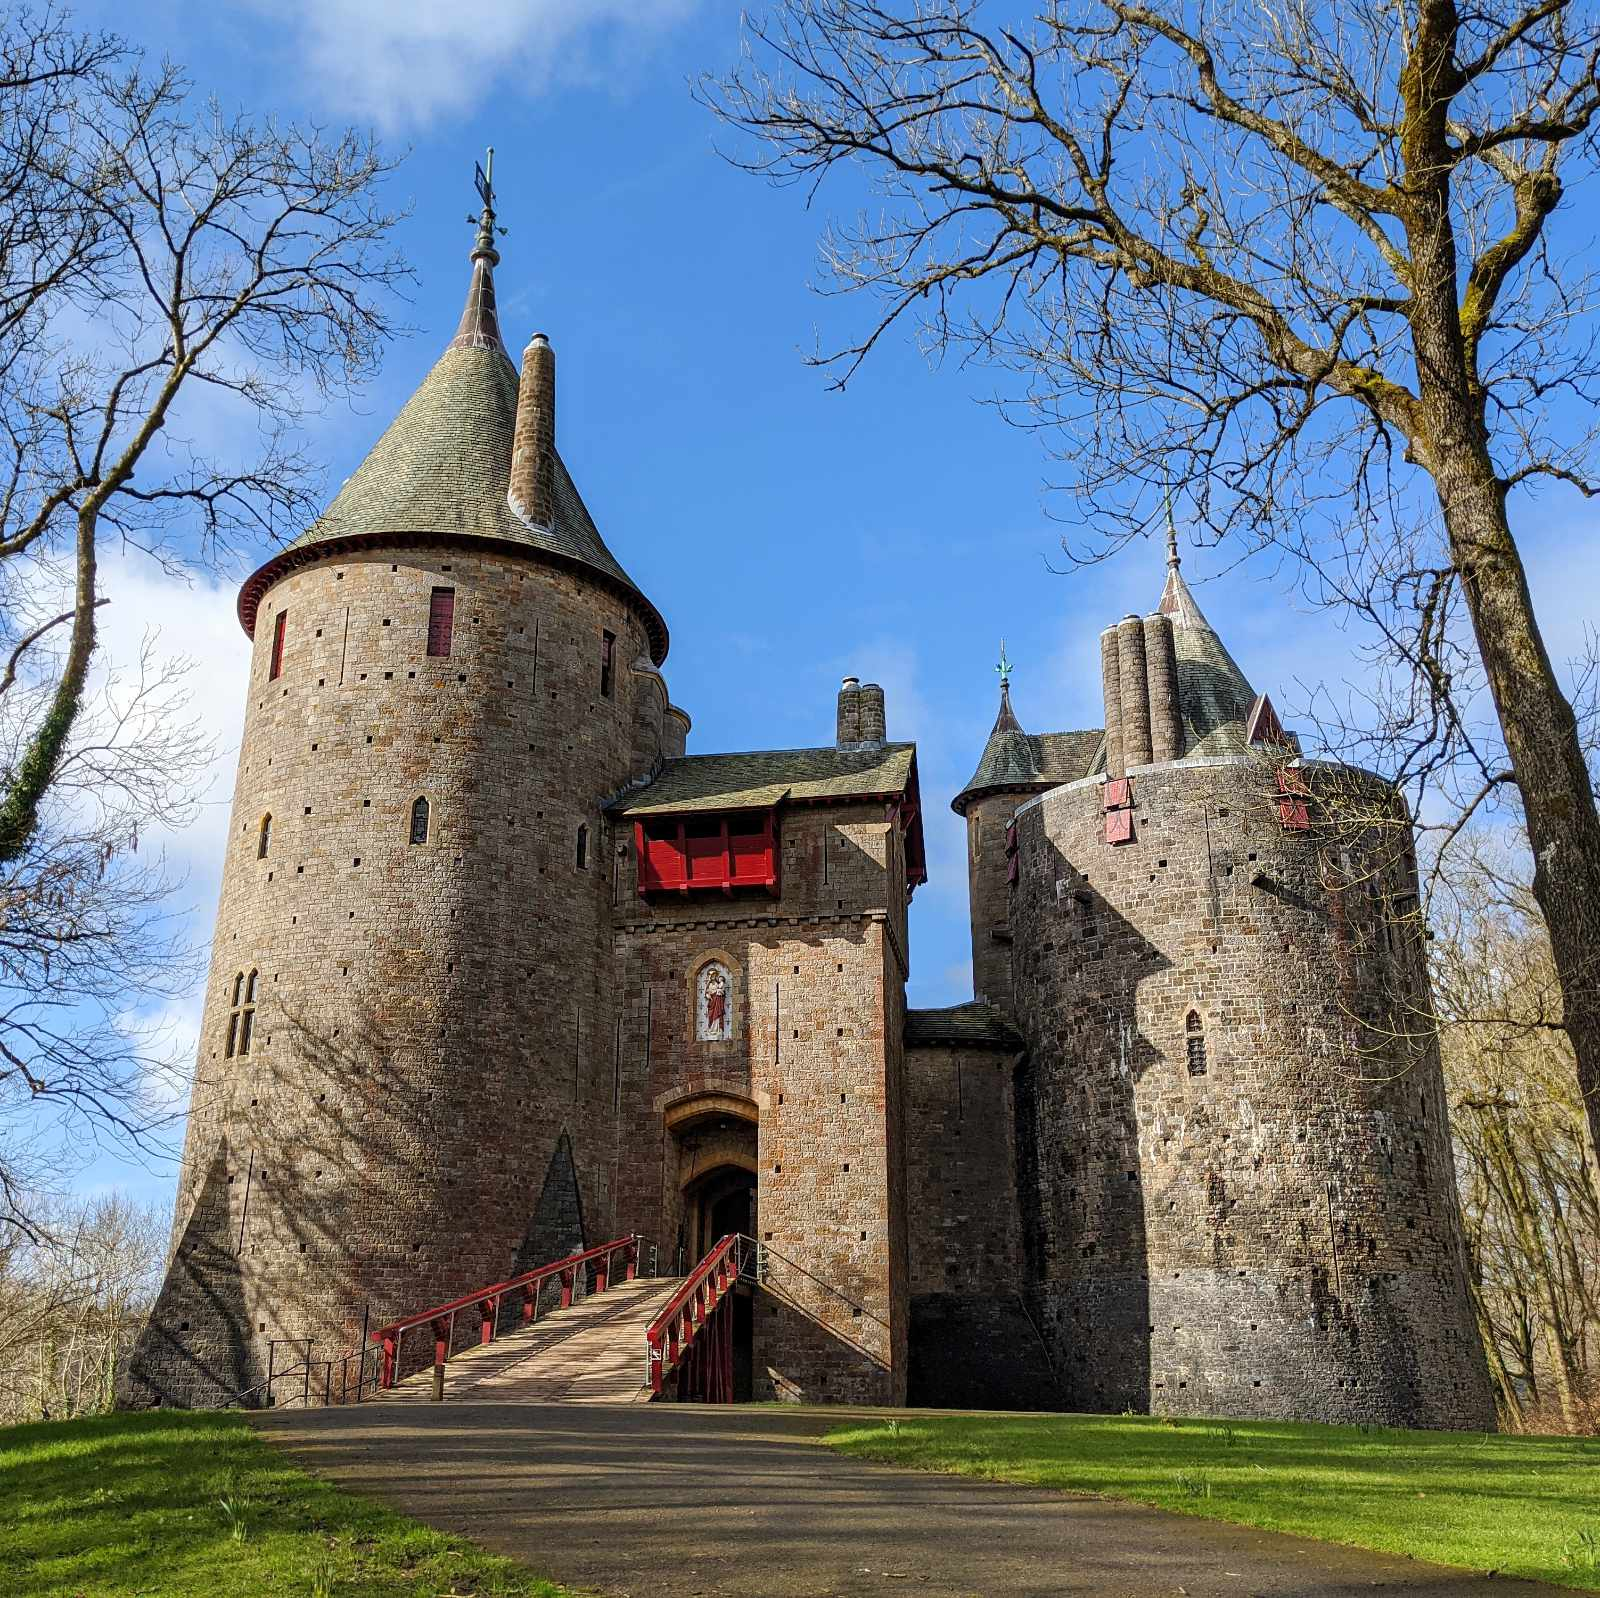 Castell Coch in winter with a blue sky